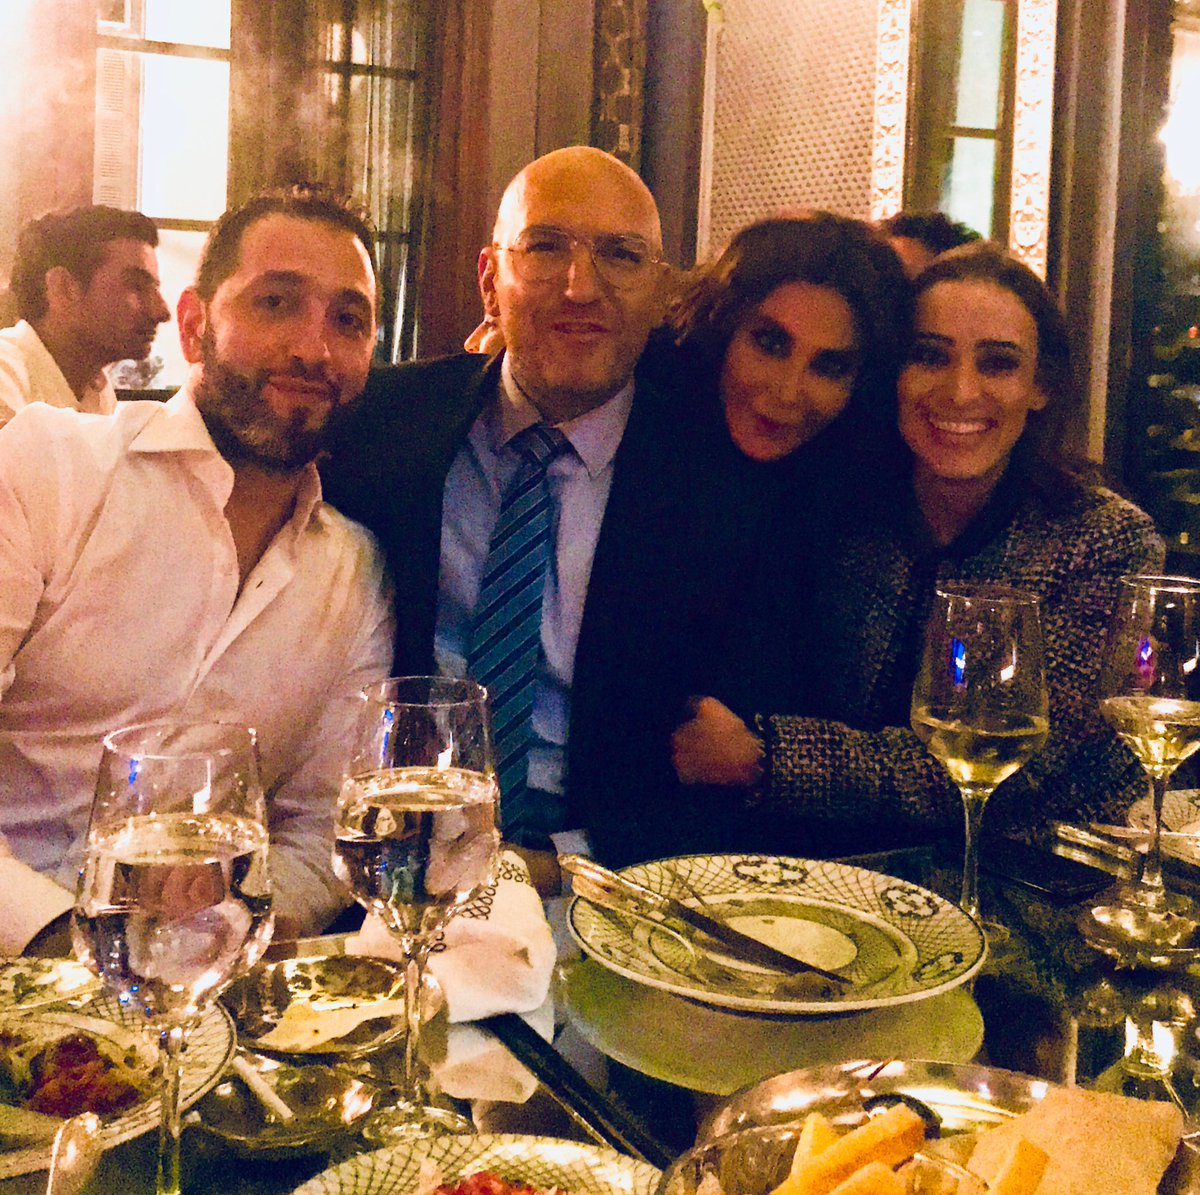 #Happybirthday @elissakh Friends for ever. Keep the good music coming.